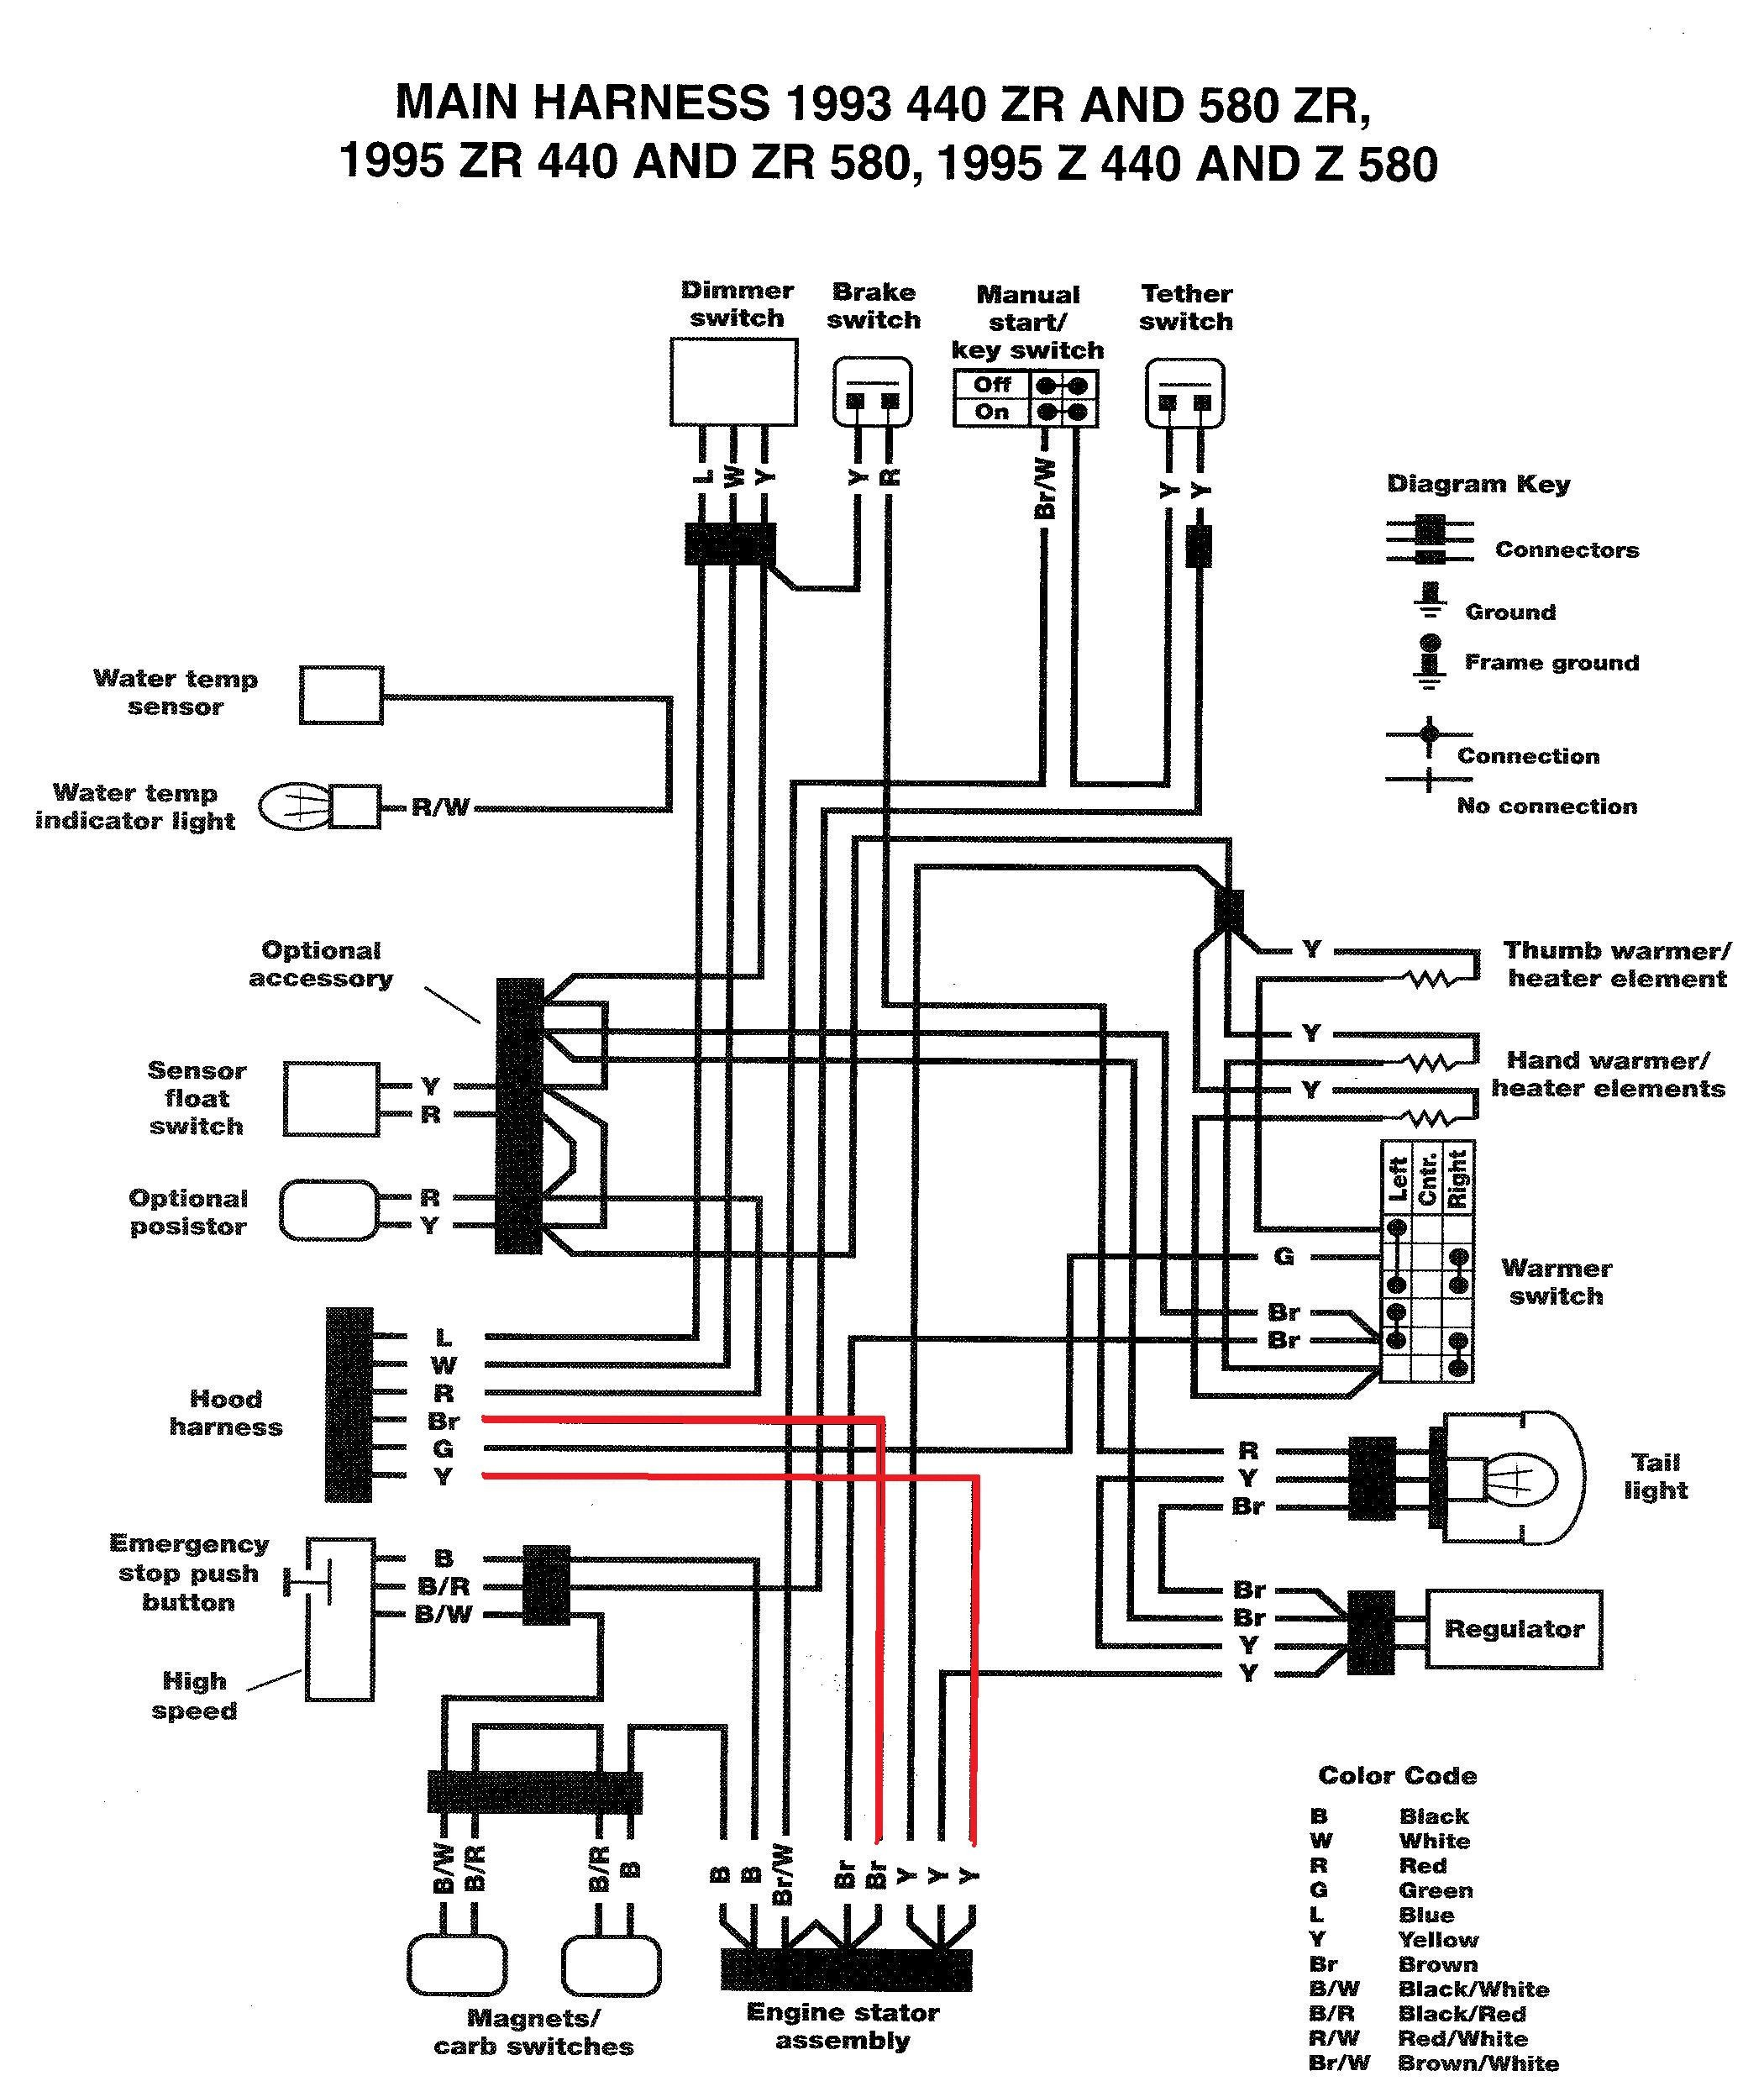 Yamaha Grizzly 660 Engine Diagram My Wiring Diagram